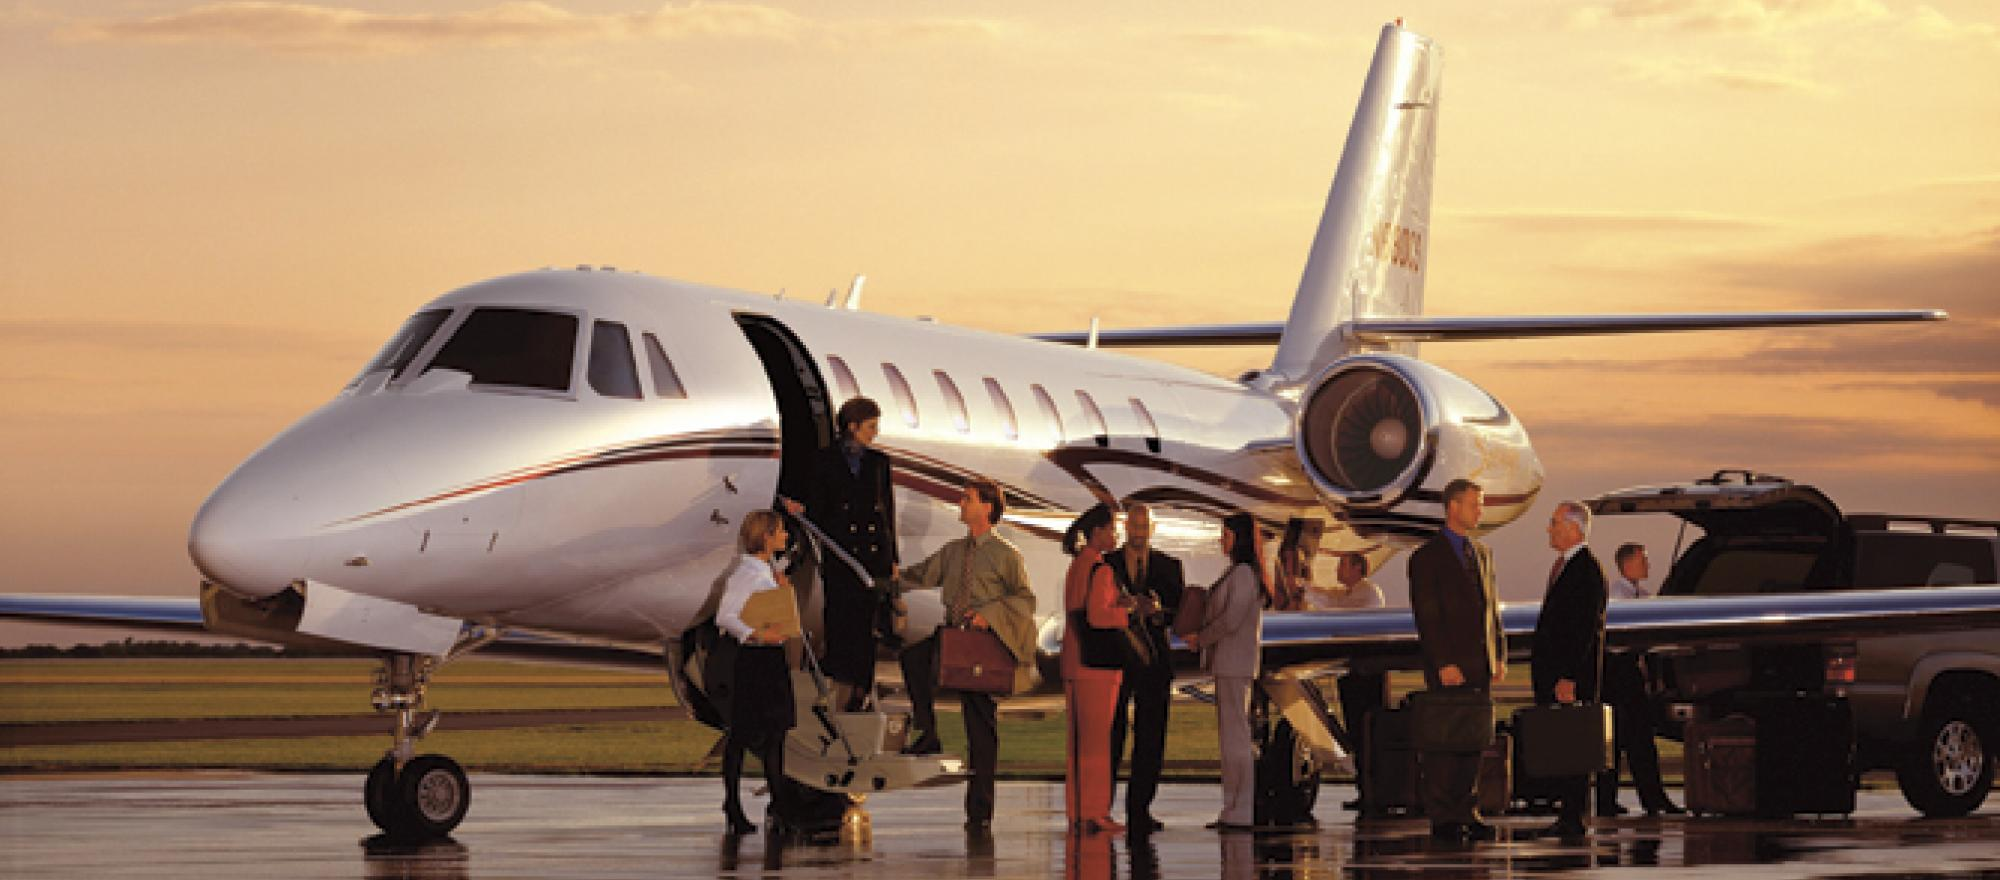 Charter operators employ more than 300 makes and models of business aircraft,